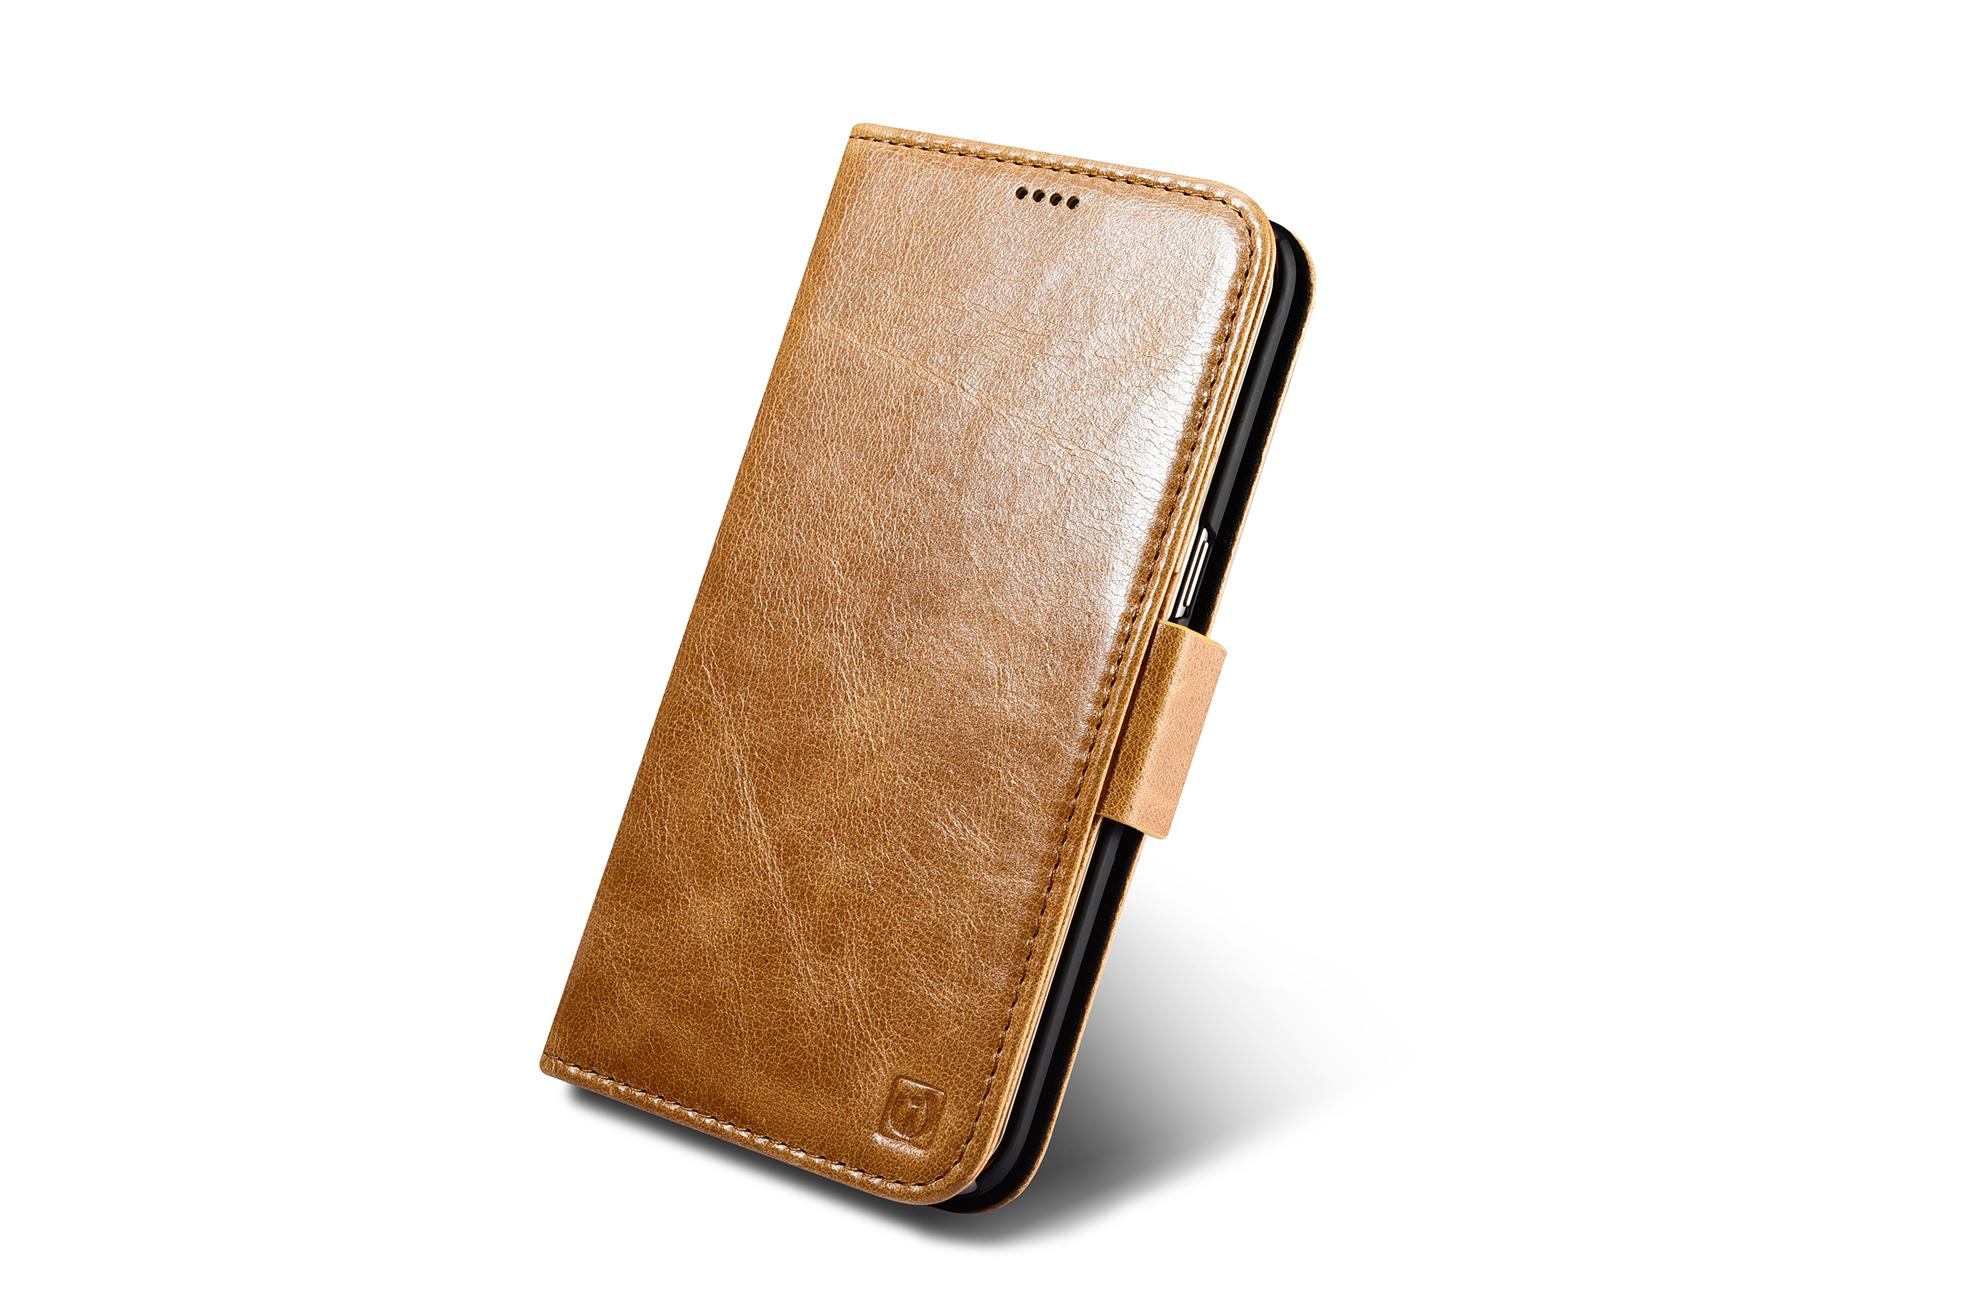 iCarer Samsung Galaxy S7 Edge Leather Detachable 2 in 1 Wallet Folio Case 4